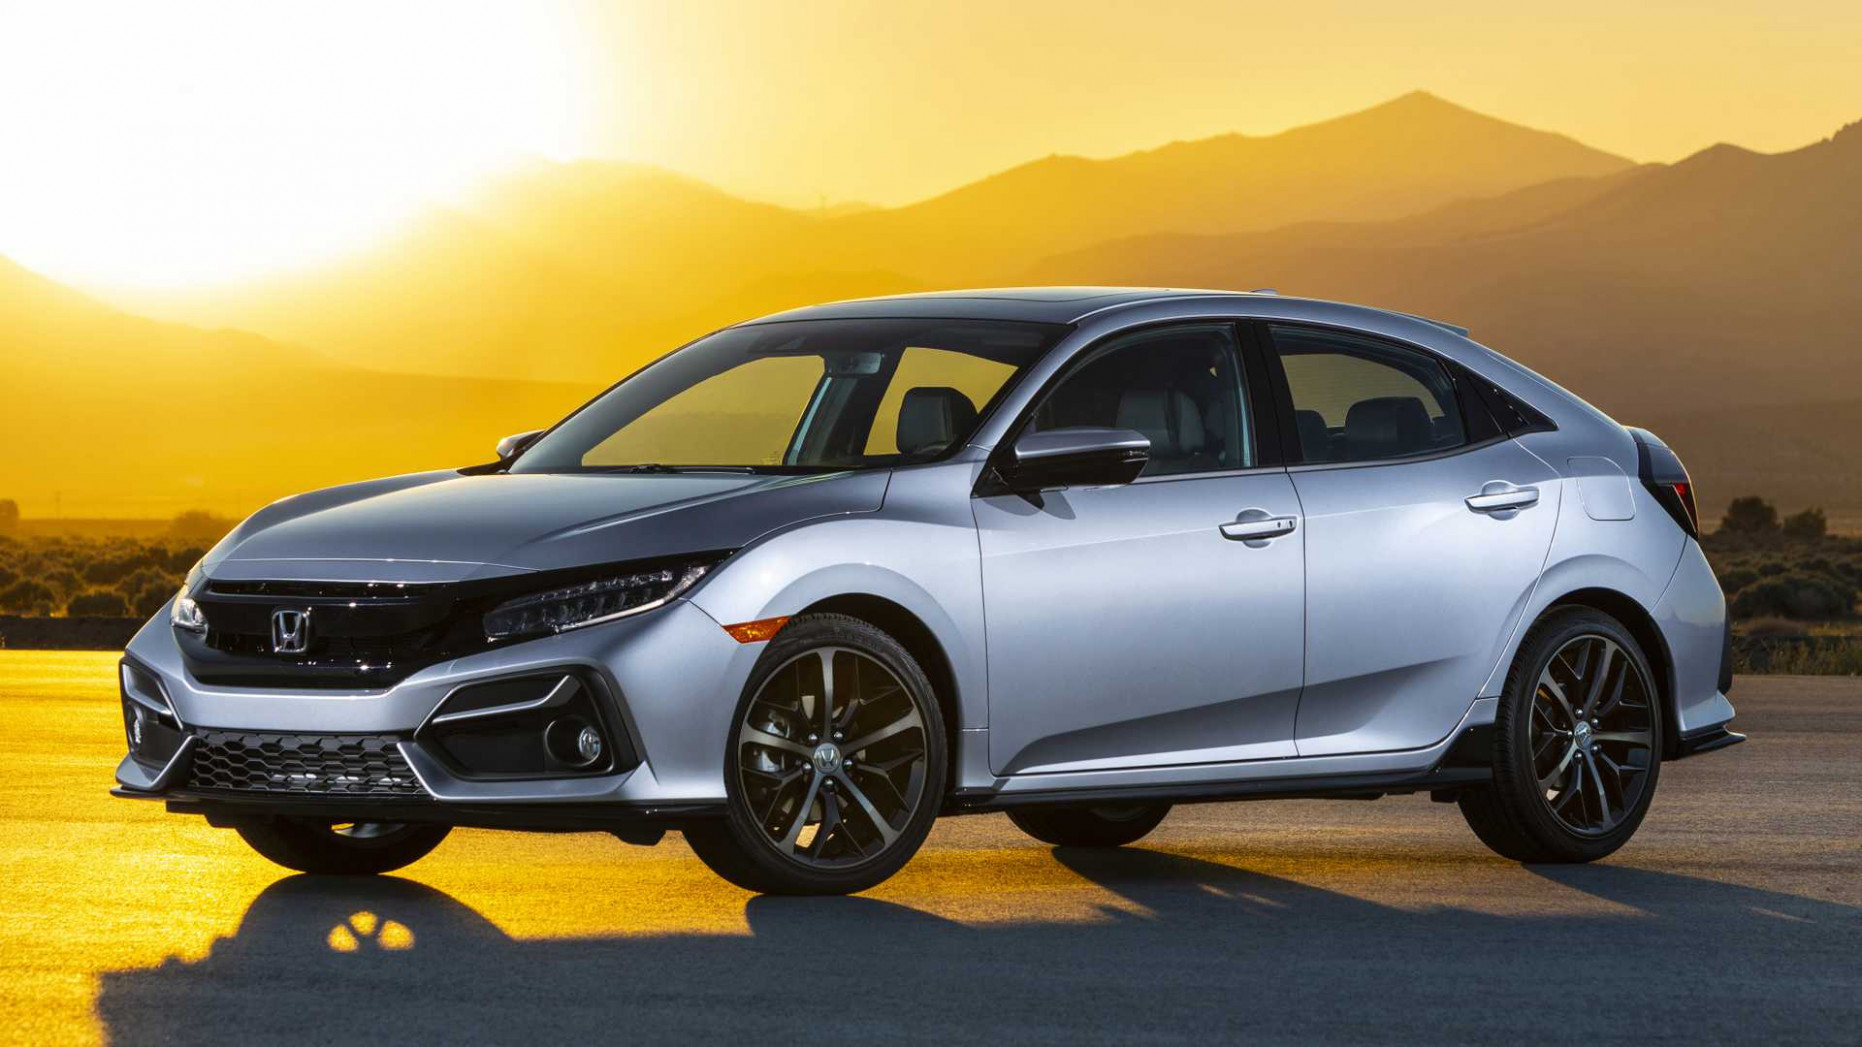 8-honda-civic-hatchback | موتوراتي - 2020 honda hatchback